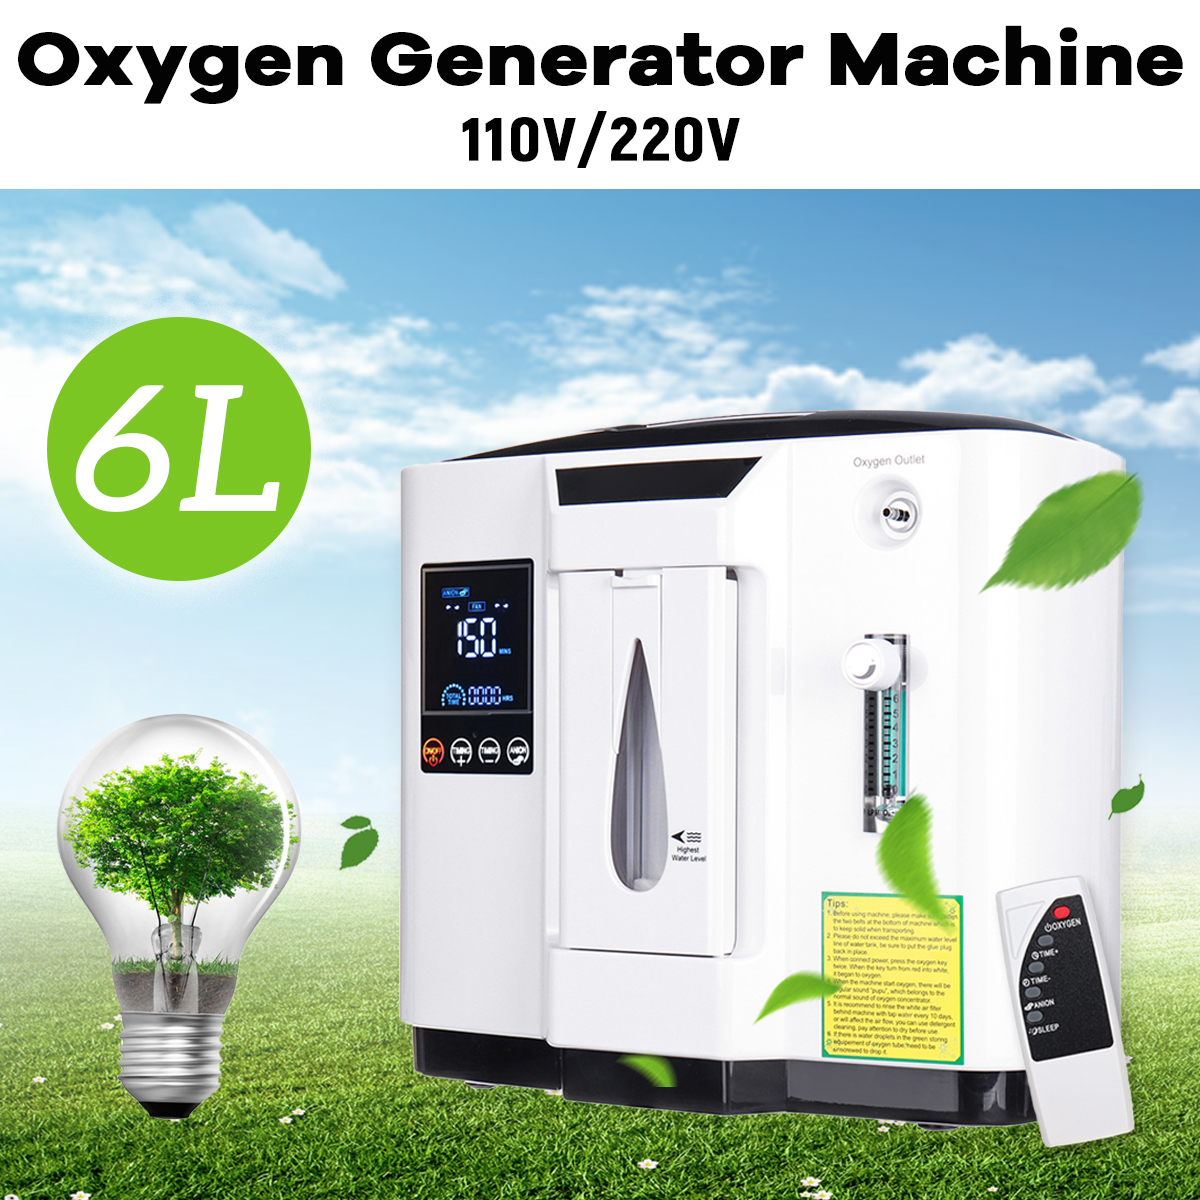 6L Adjustable Portable Oxygen Generator Concentrator Home Medical Machine Quiet medical oxygen concentrator for respiratory diseases 110v 220v oxygen generator copd oxygen supplying machine